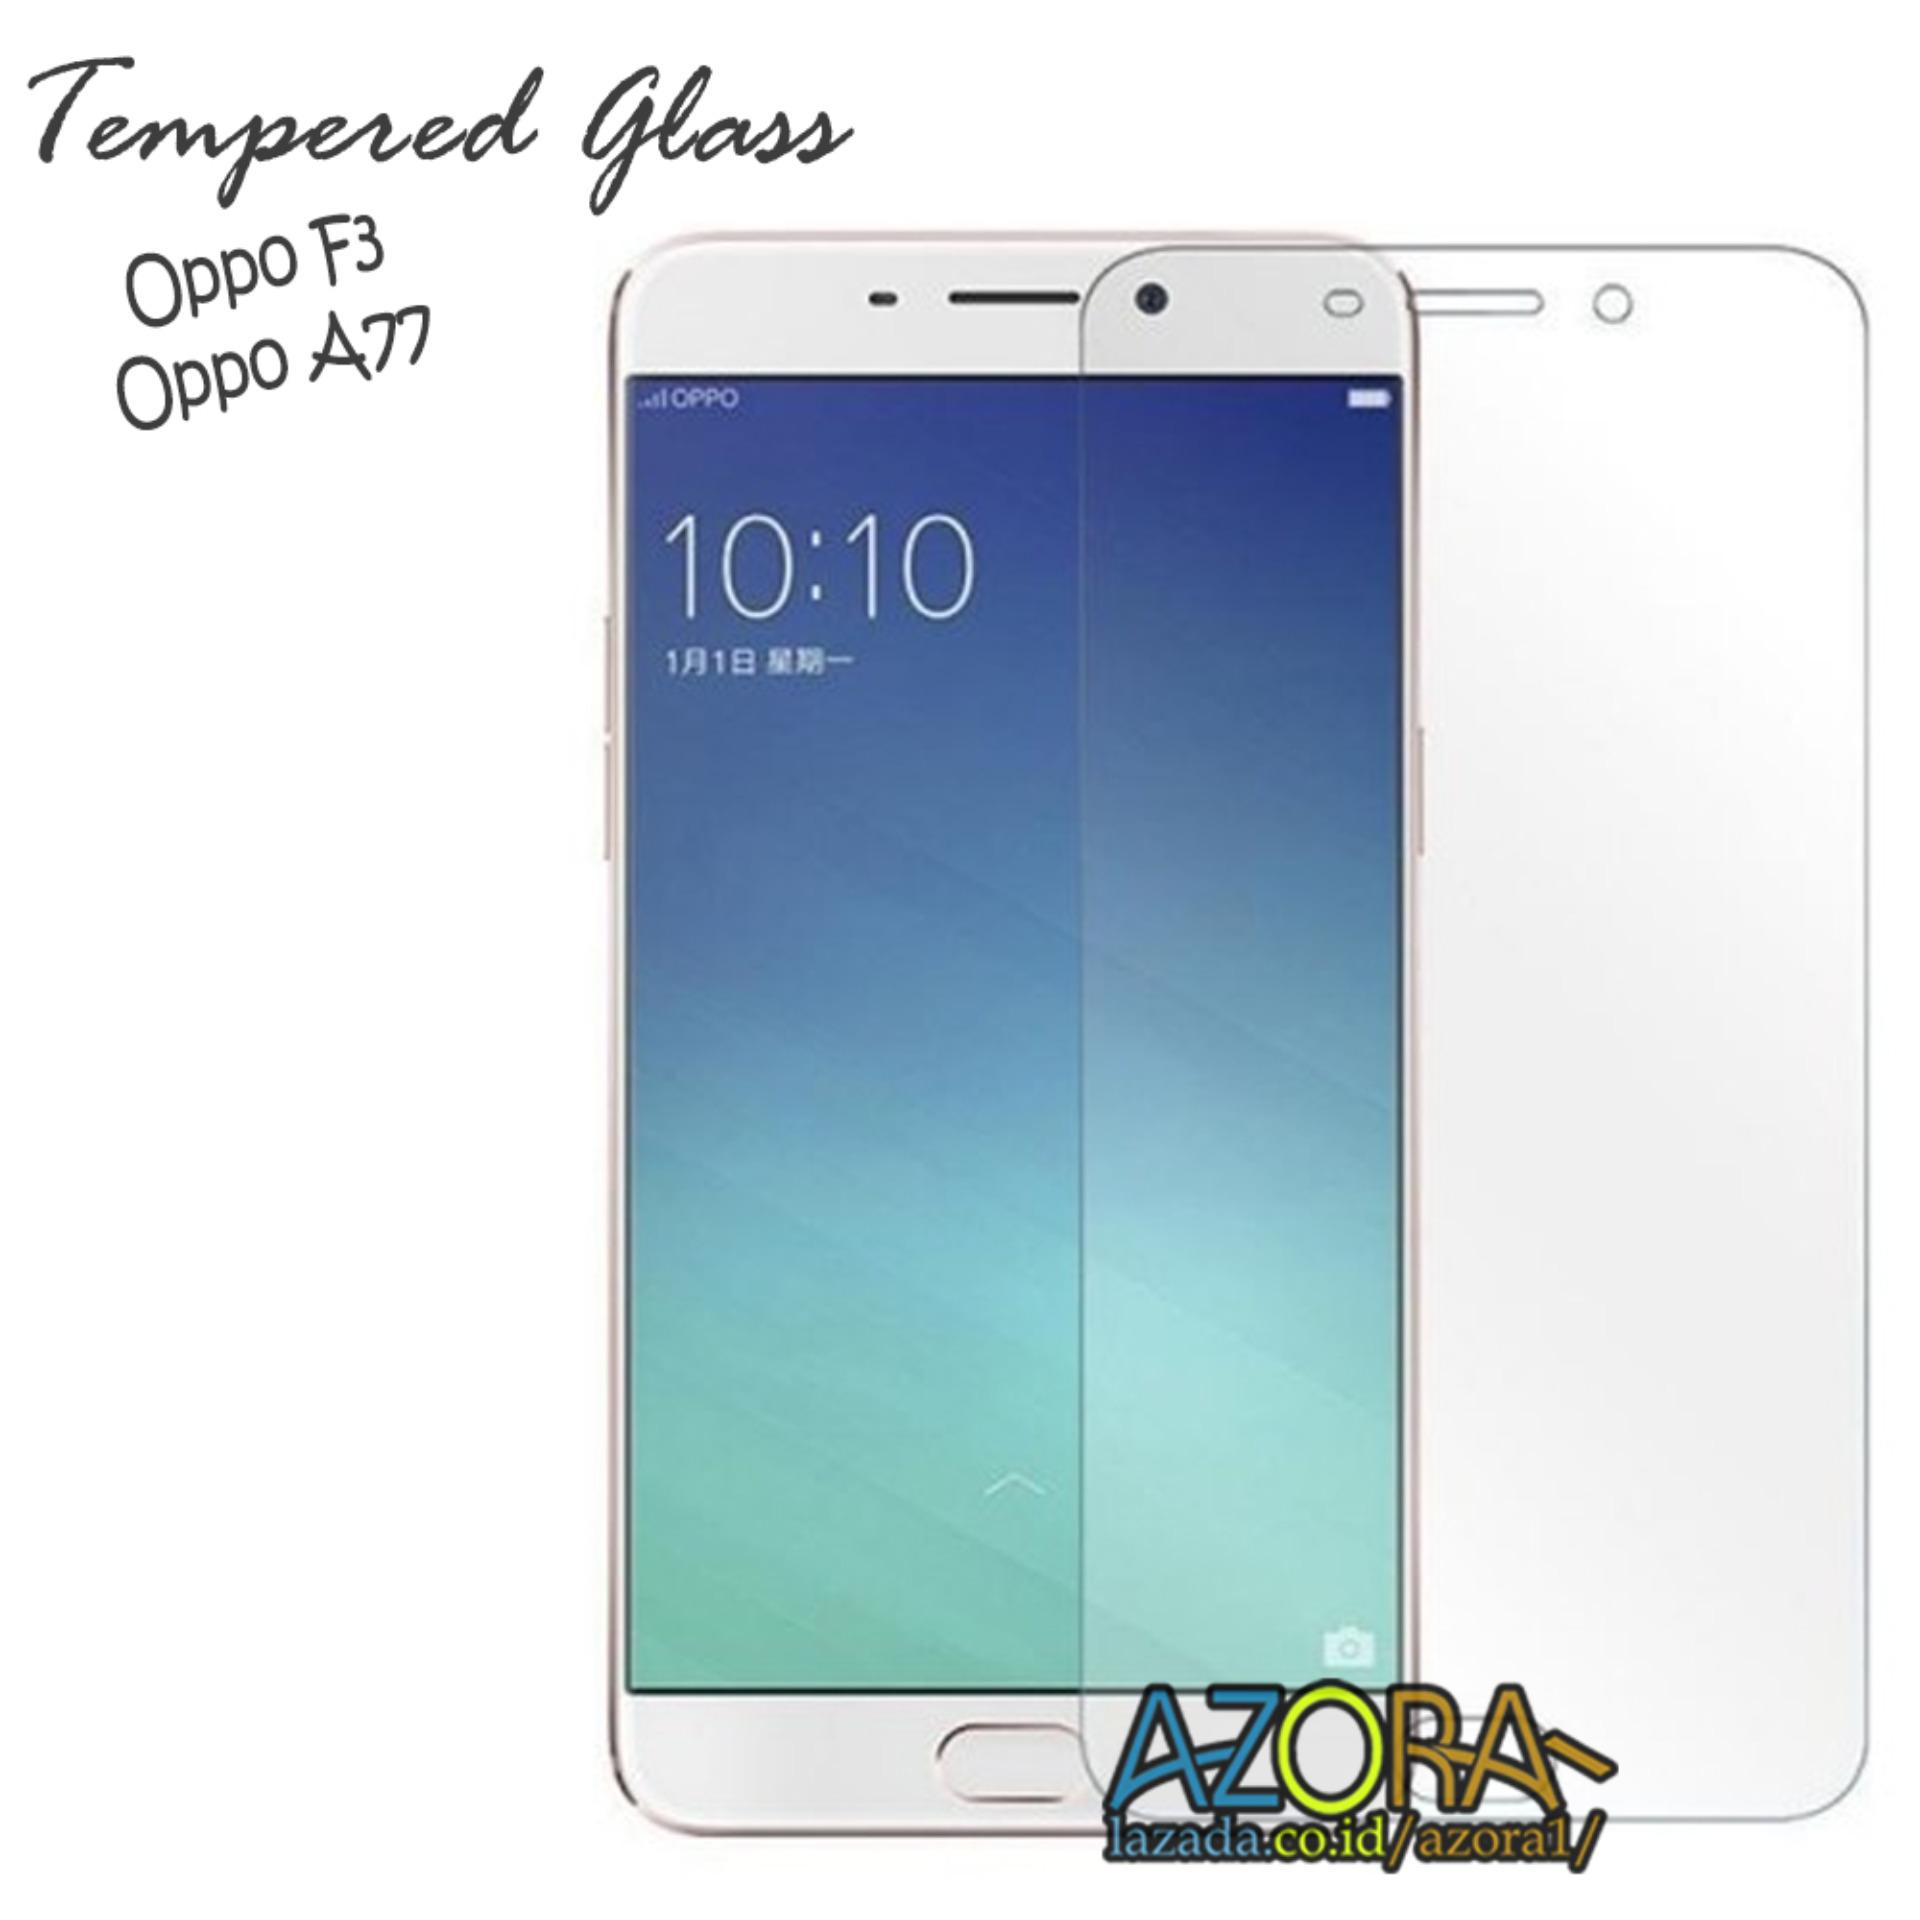 Tempered Glass Oppo F3 / A77 Screen Protector Pelindung Layar Kaca Anti Gores - Bening